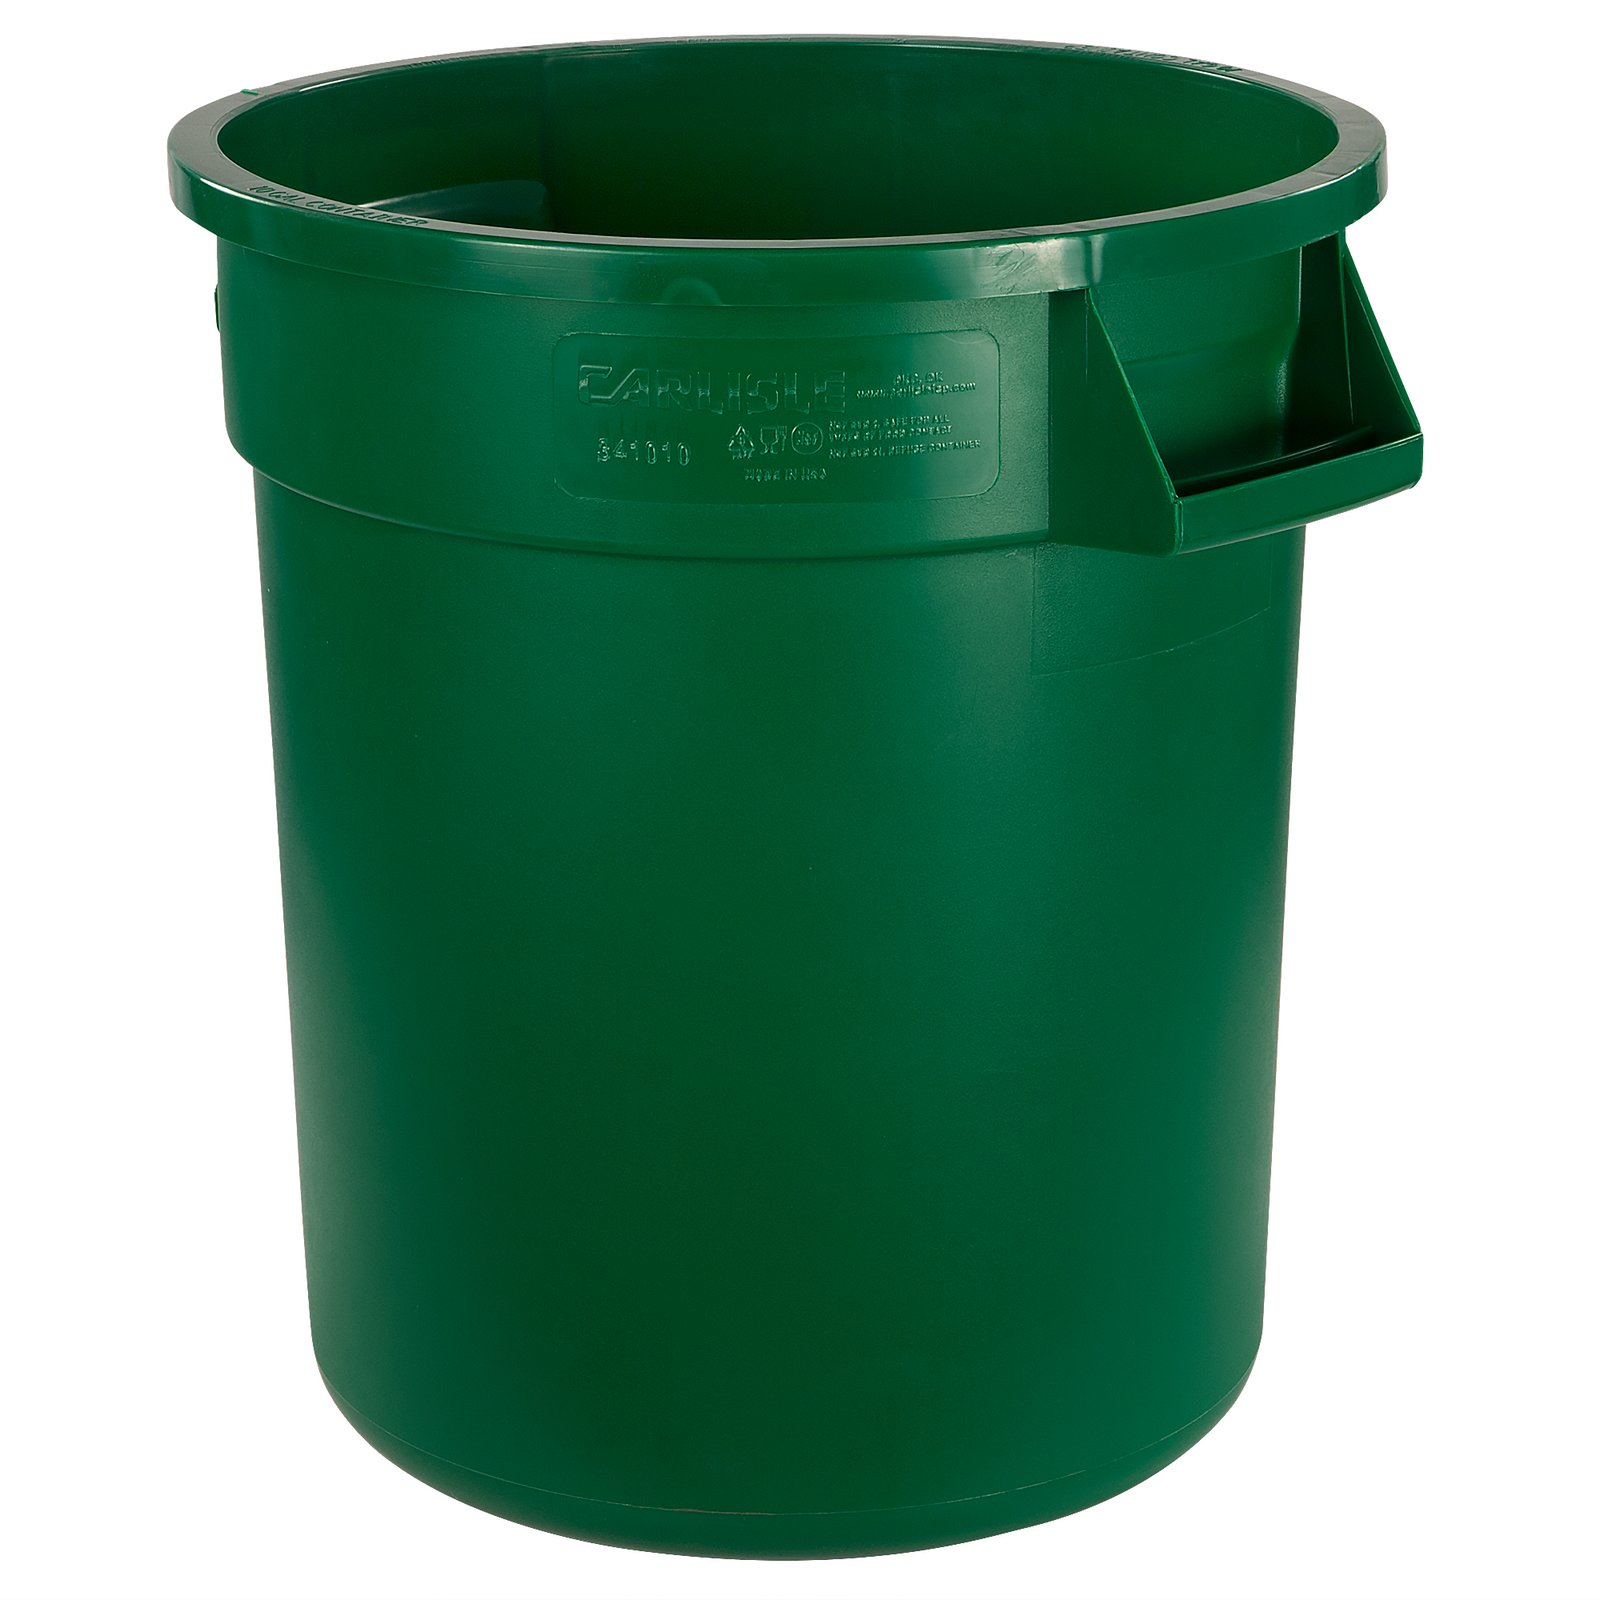 34101009 bronco round waste bin food container 10 gallon green carlisle foodservice products - Garden waste containers ...